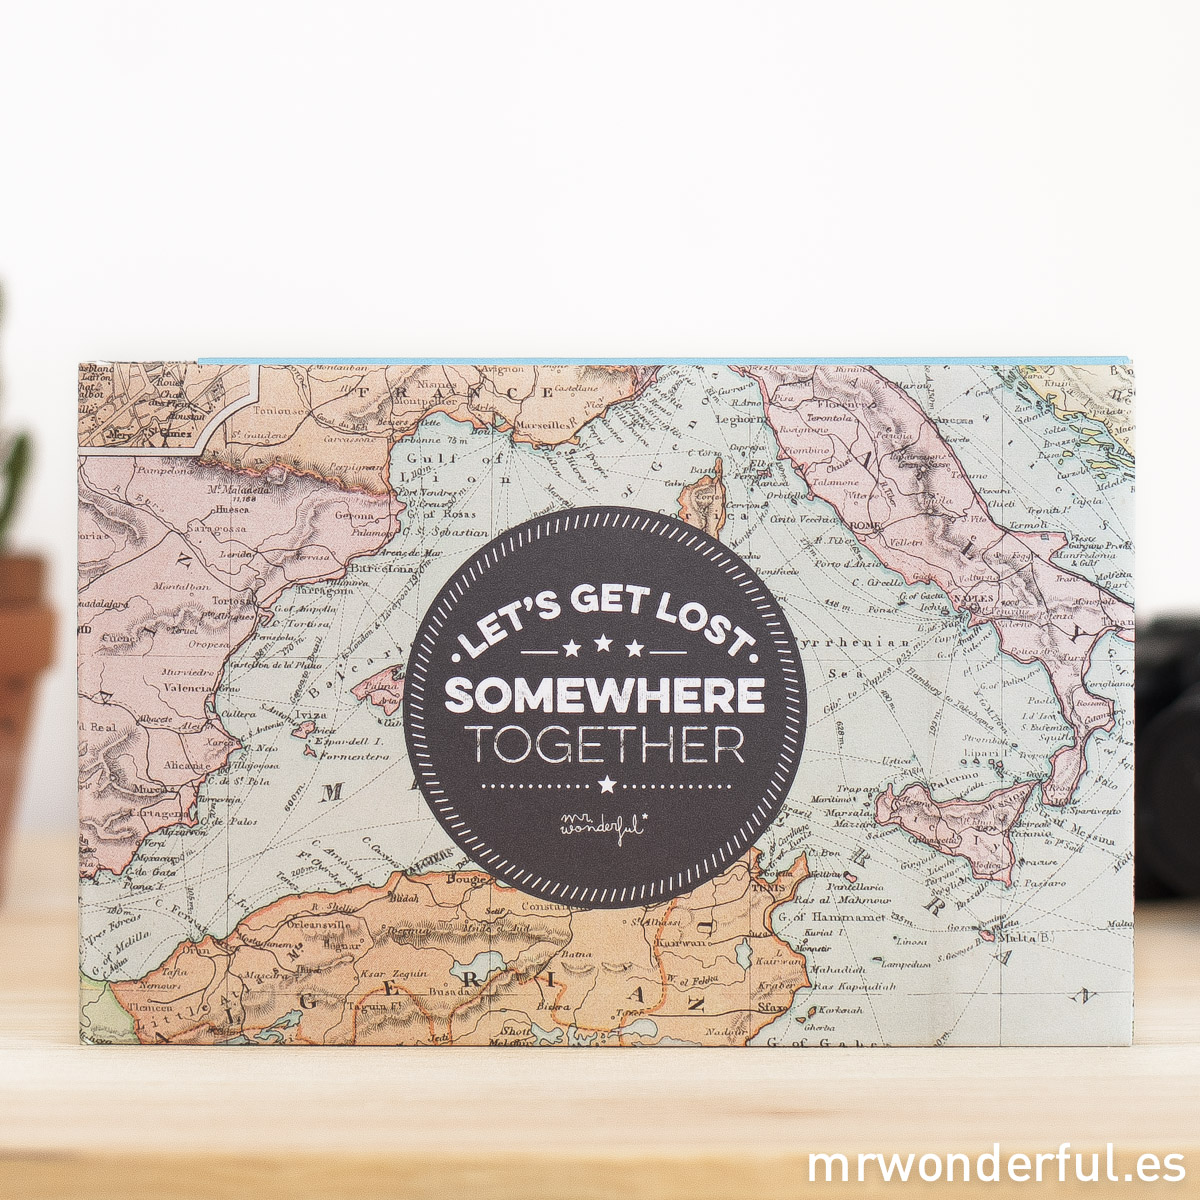 mrwonderful_ALBUM-VIAJE-ING_album-filled-laughter-exotic-landscape-1